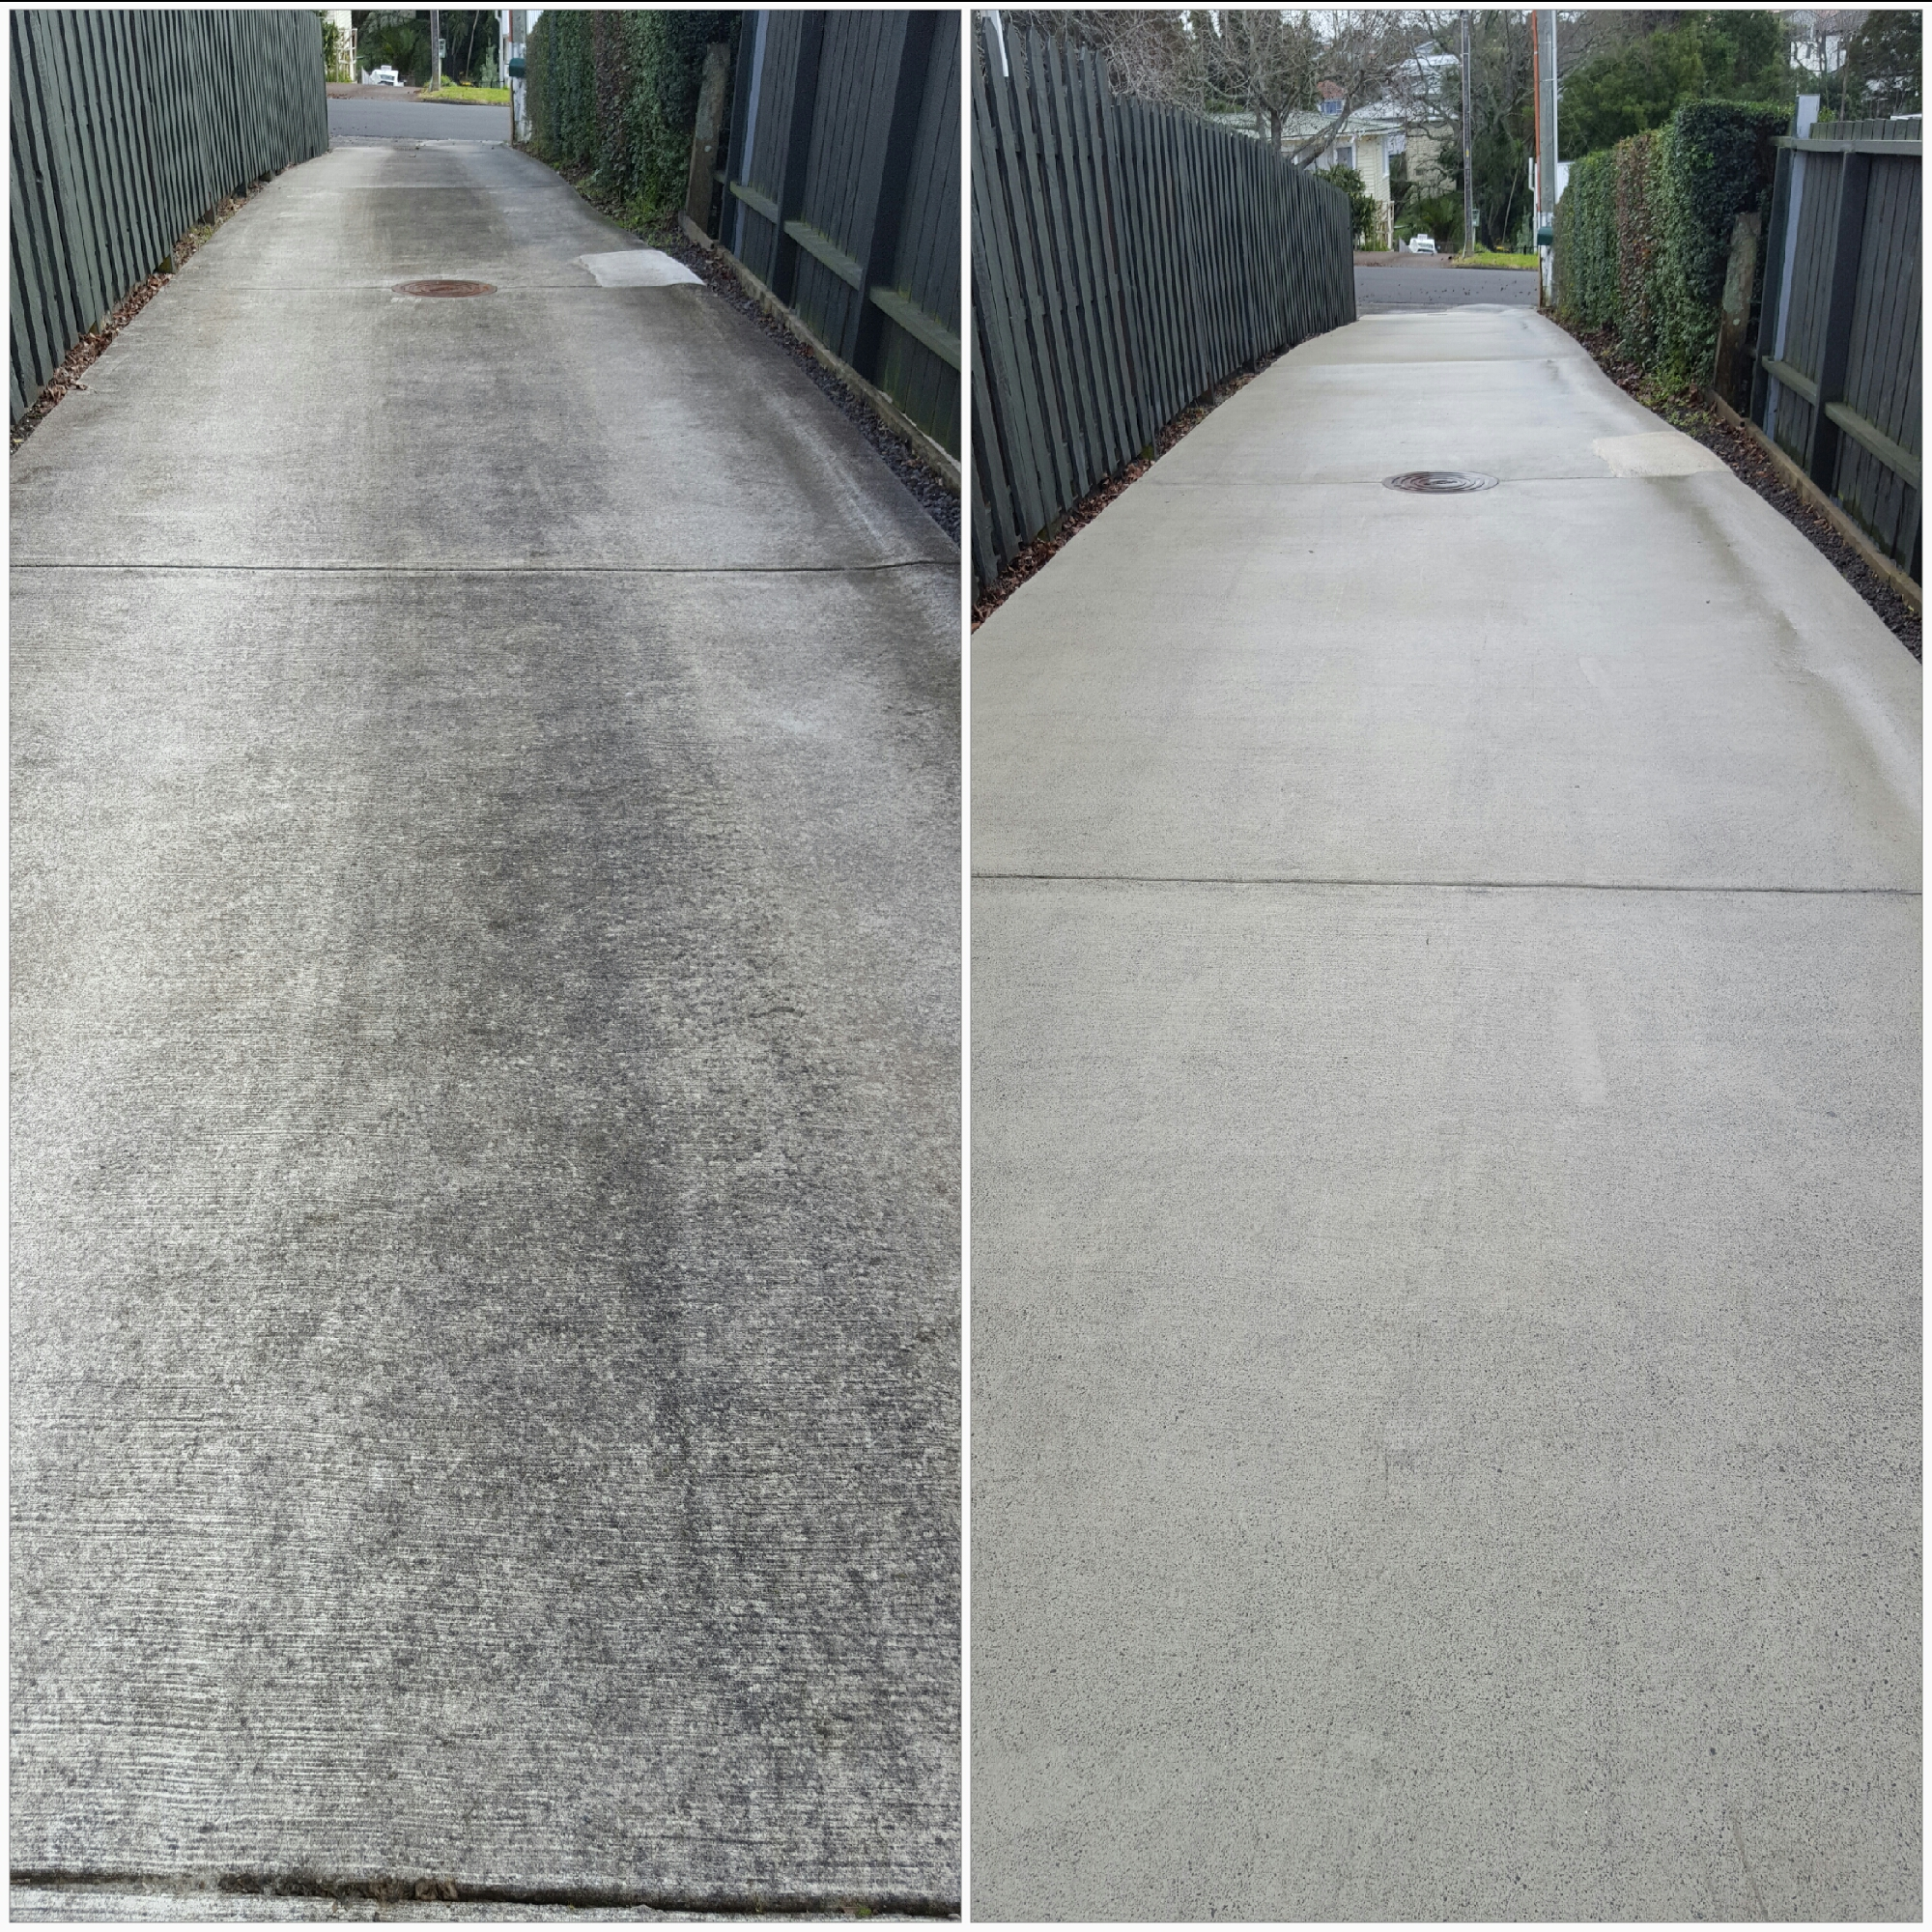 Gallery auckland waterblasters for What to clean concrete with